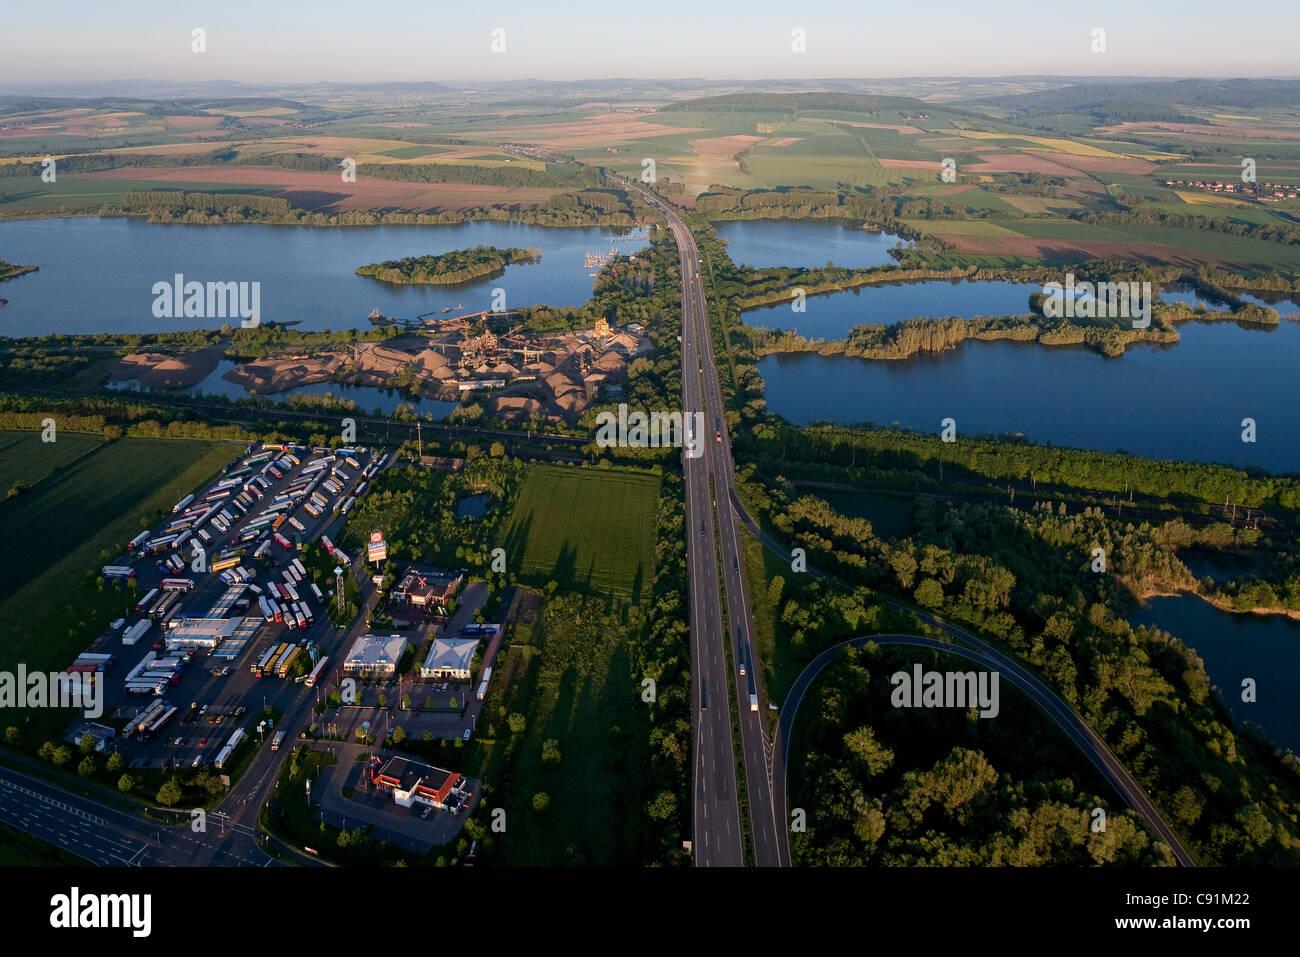 Aerial of Autobahn A7 crossing shingle ponds near Northeim, Lower Saxony, Germany - Stock Image